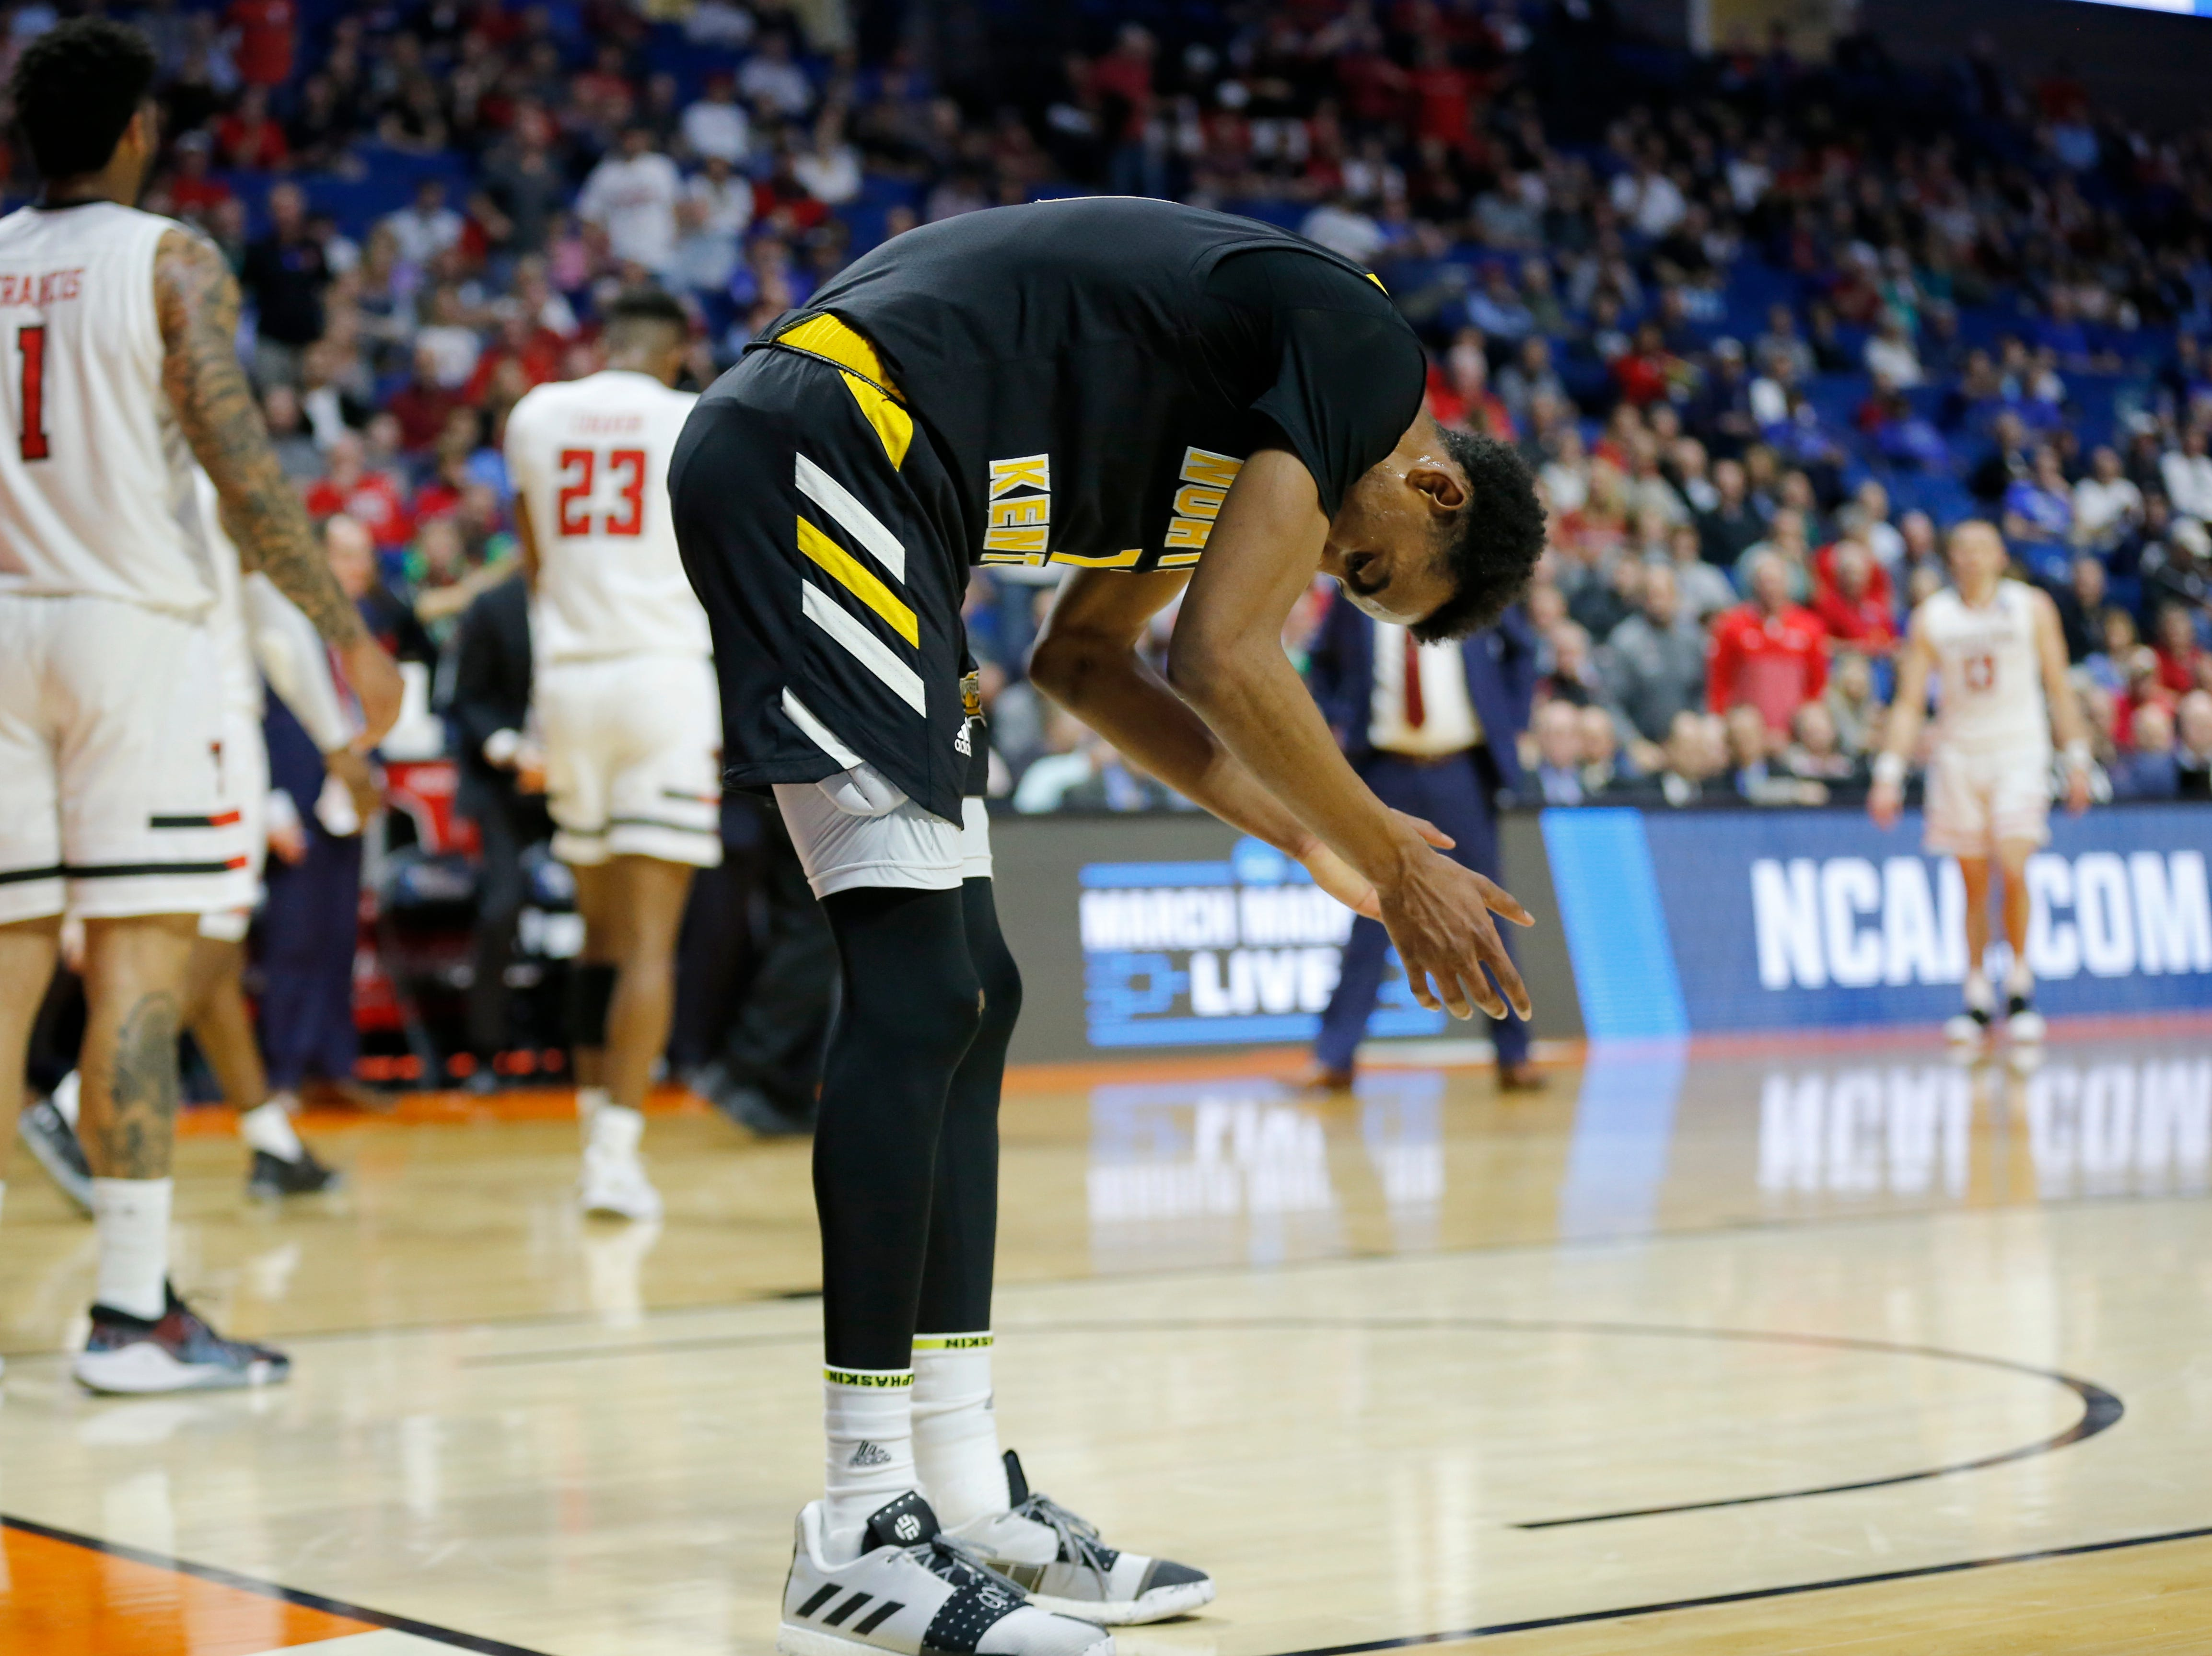 Northern Kentucky Norse guard Jalen Tate (11) gathers himself after a turnover in the first half of the NCAA Tournament First Round game between the 14-seeded Northern Kentucky Norse and the 3-seeded Texas Tech Red Raiders the BOK Center in downtown Tulsa on Friday, March 22, 2019. Texas Tech led 30-26 at halftime.